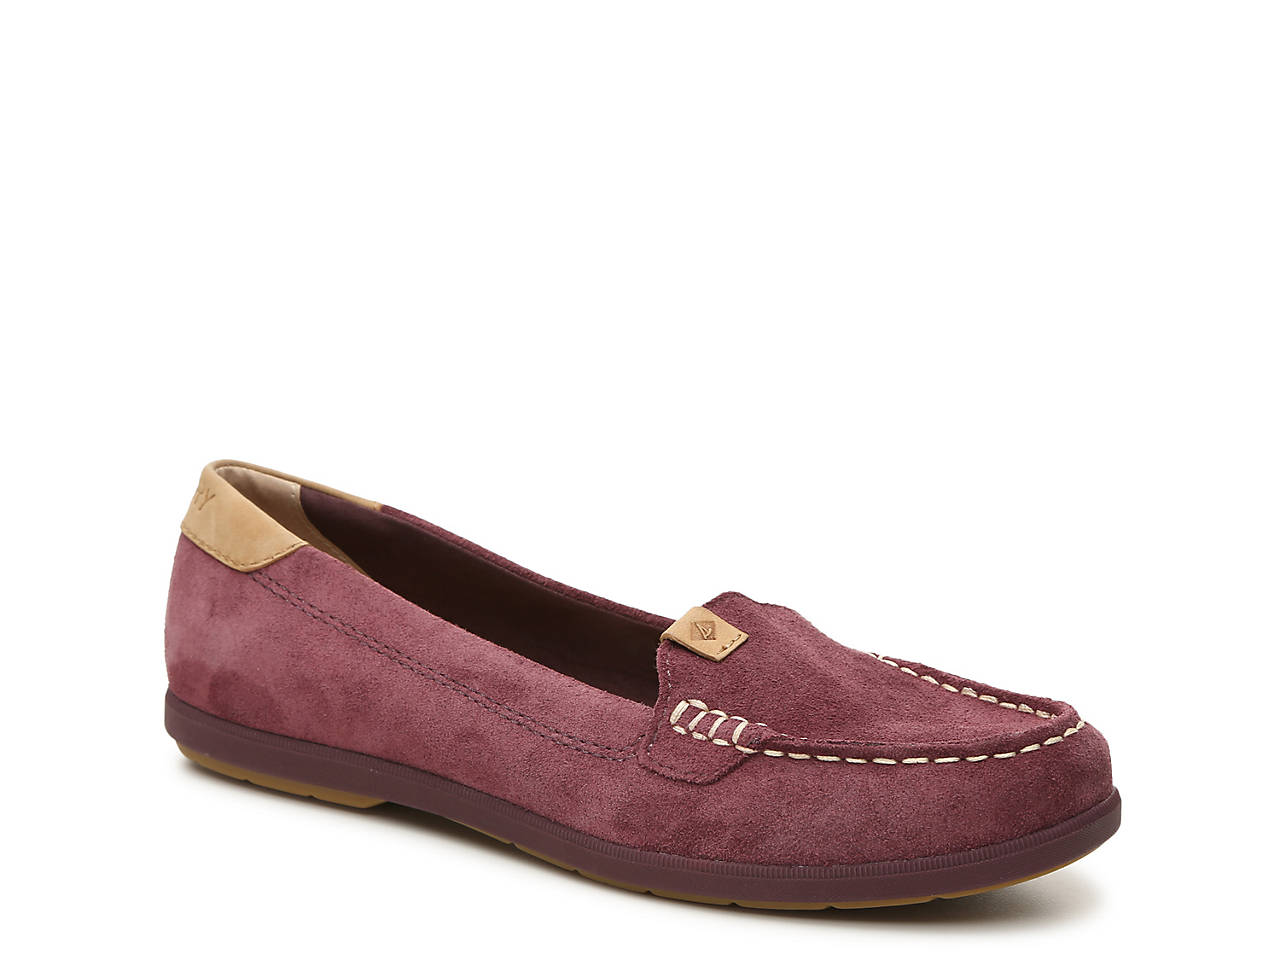 7a9ad6f01f Sperry Top-Sider Coil Mia Loafer Women s Shoes